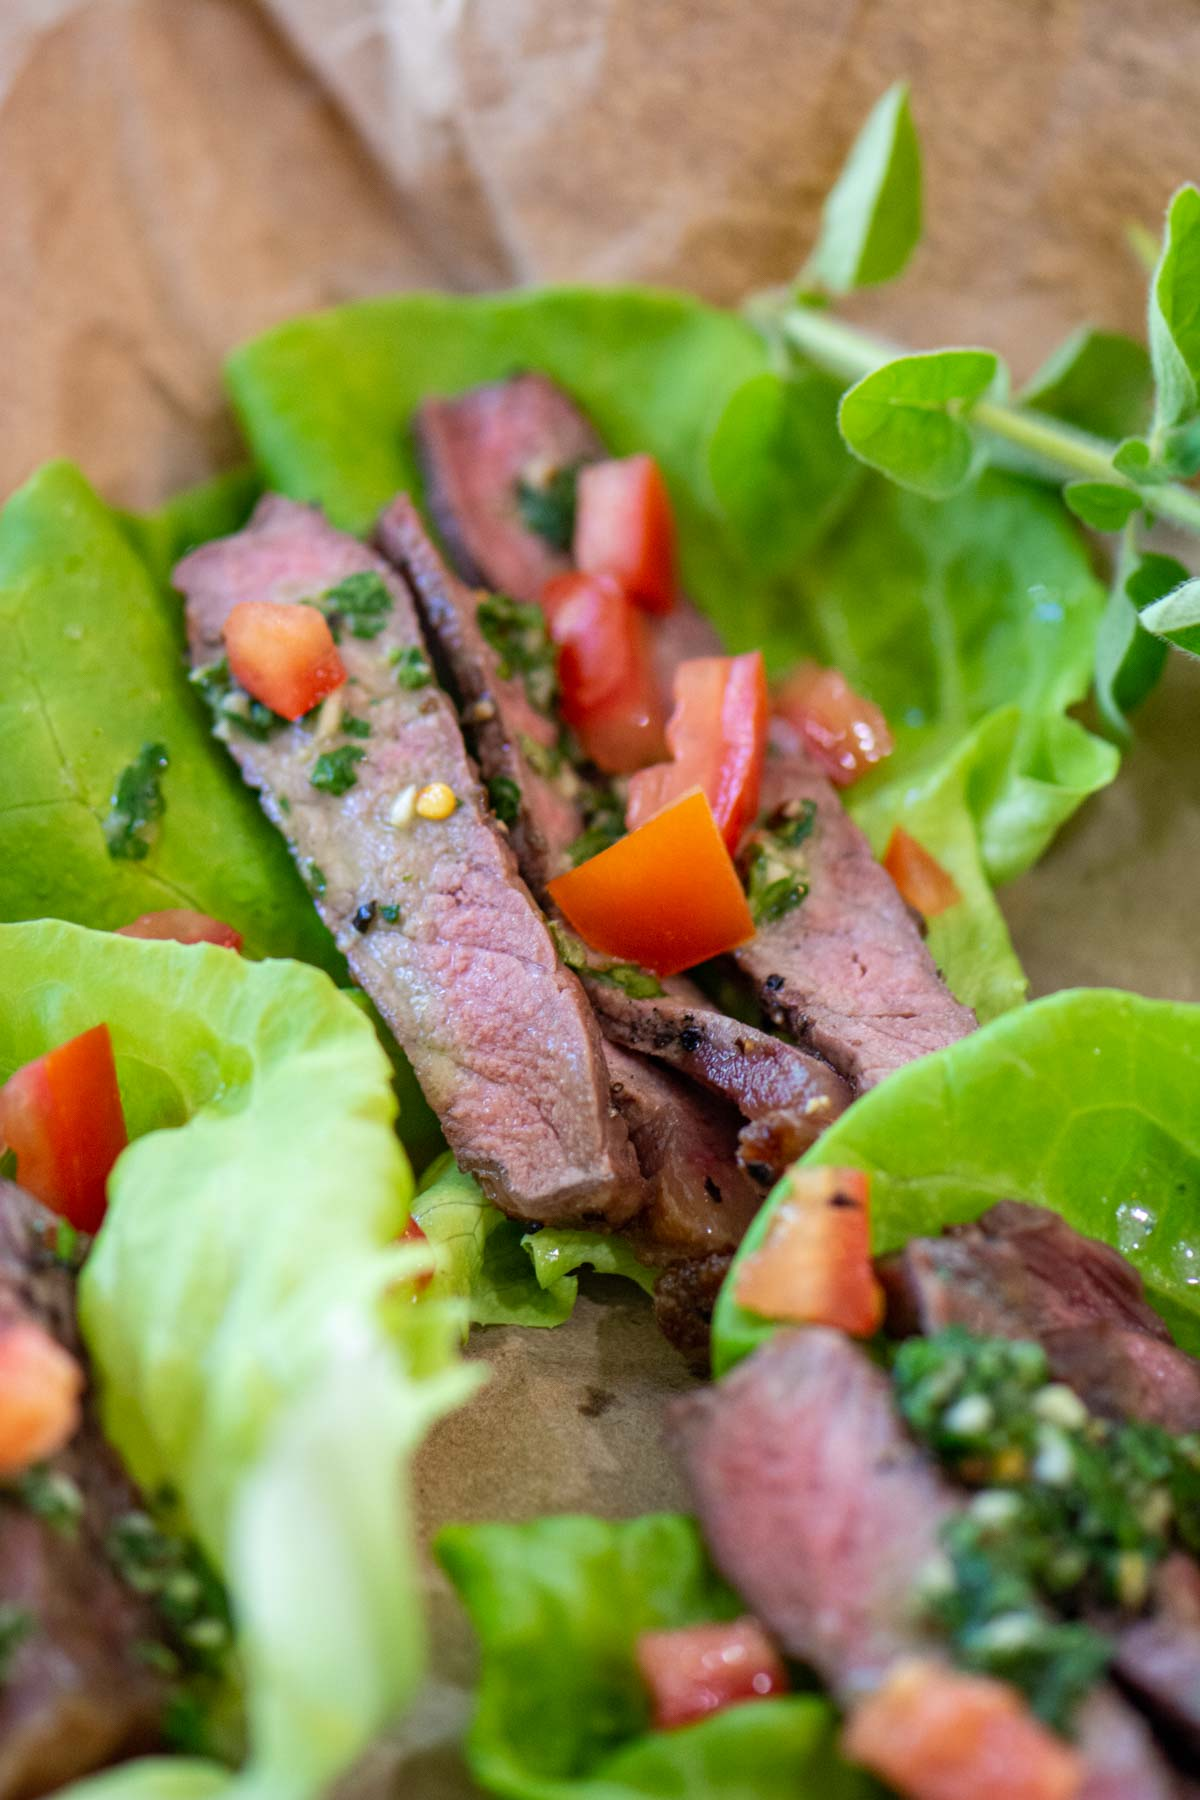 sliced grilled sirloin on lettuce wraps and topped with a fresh Chimichurri sauce.